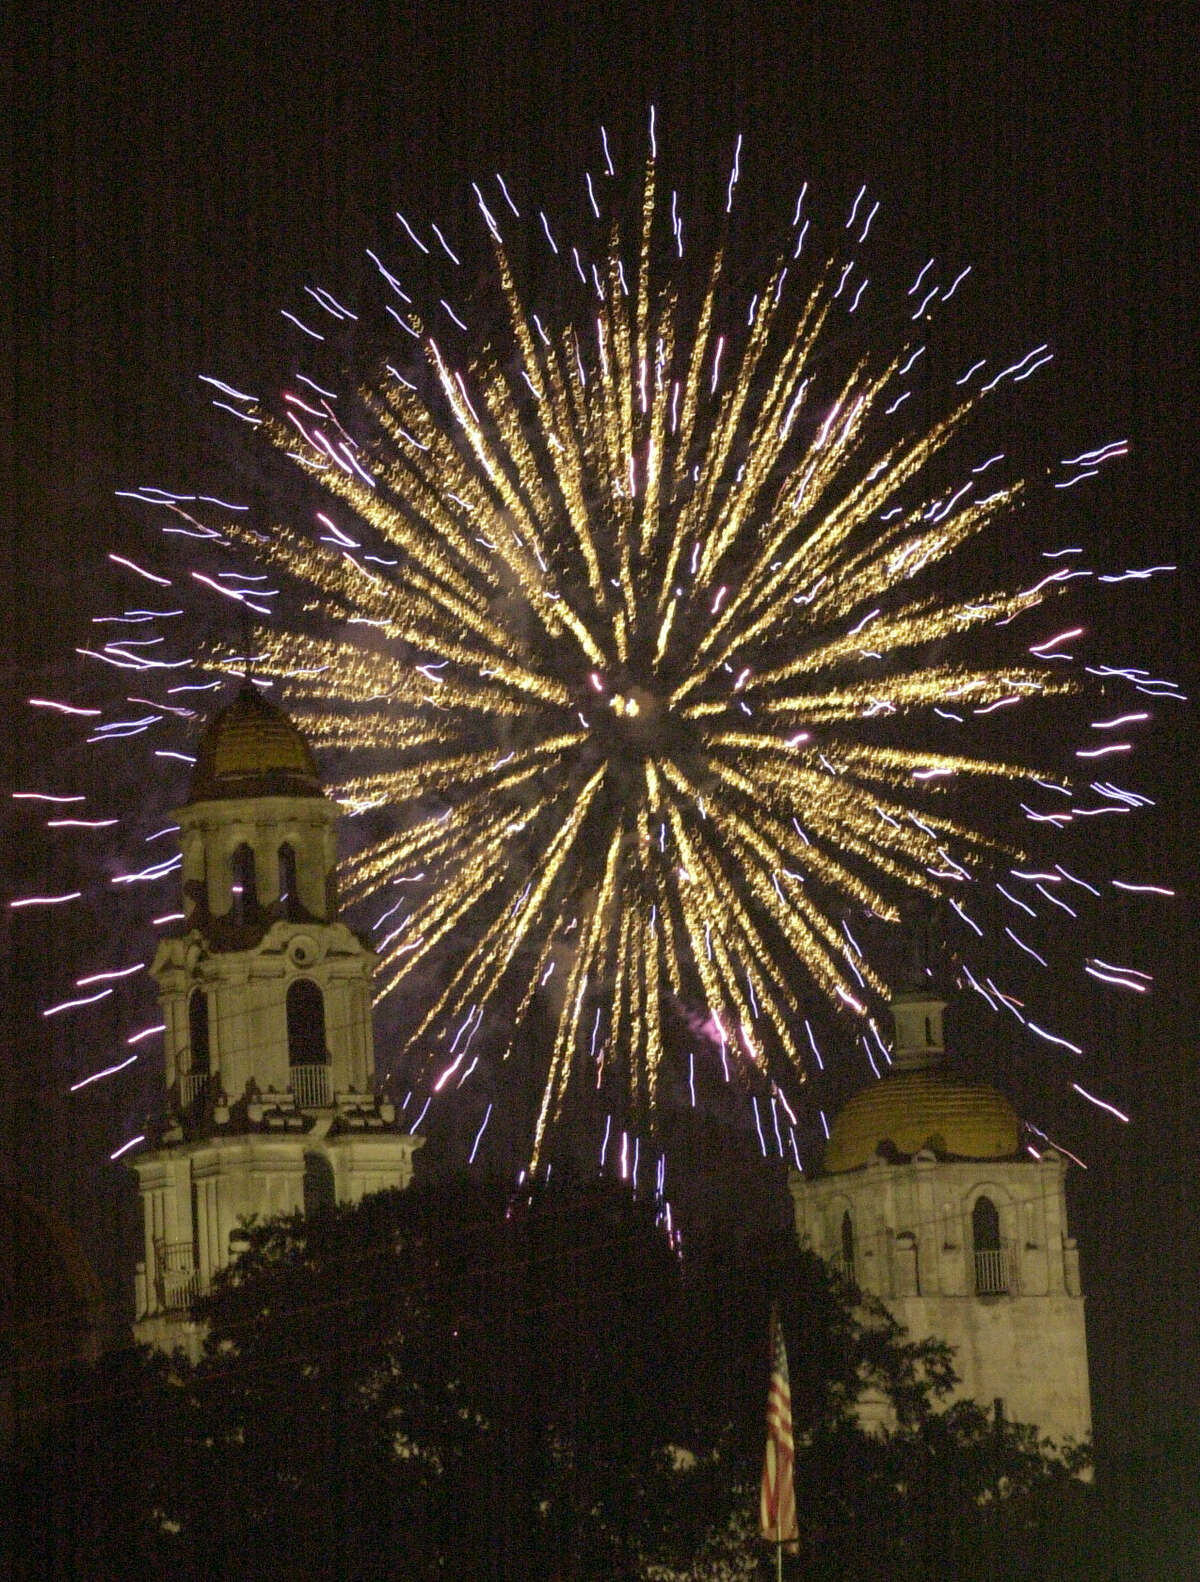 The Basilica of the National Shrine of Little Flower steeples frame the fireworks display at Woodlawn Lake on July 4, 2003.